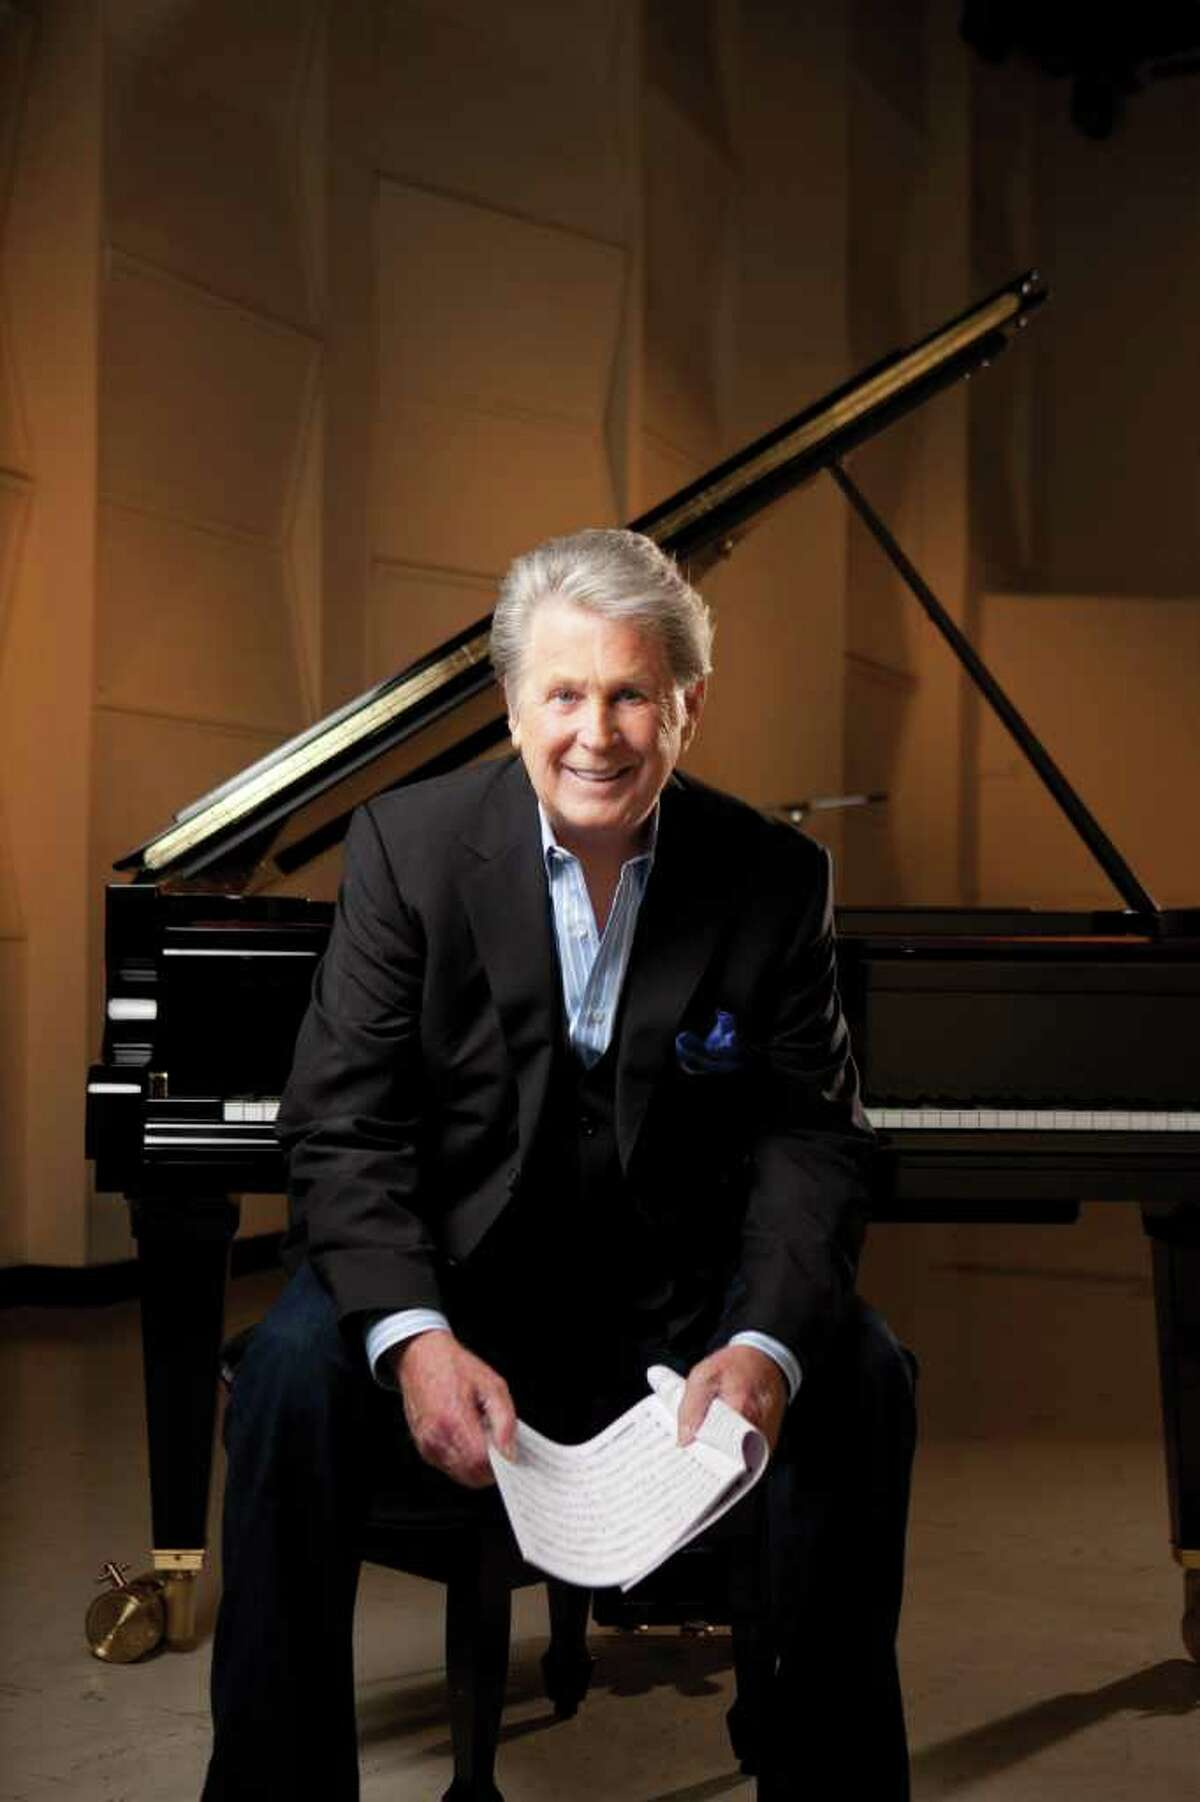 Brian Wilson, co-founder of The Beach Boys, will perform in concert at The Ridgefield Playhouse on Wednesday, June 8.